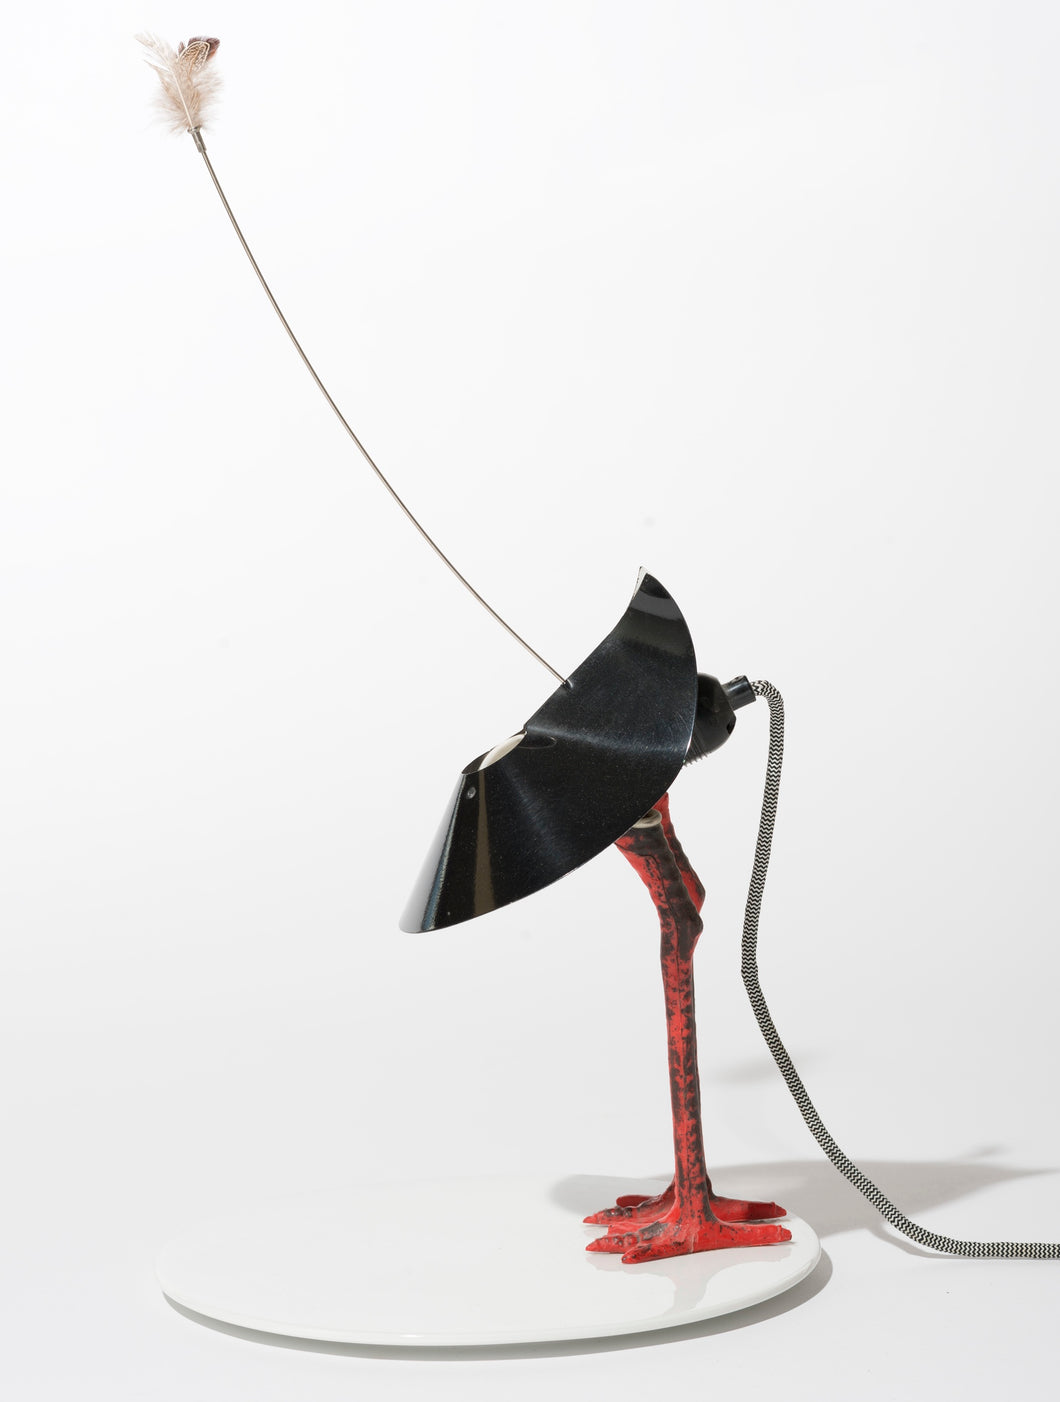 Ingo Maurer, Limited edition Bibibibi lamp, 1982